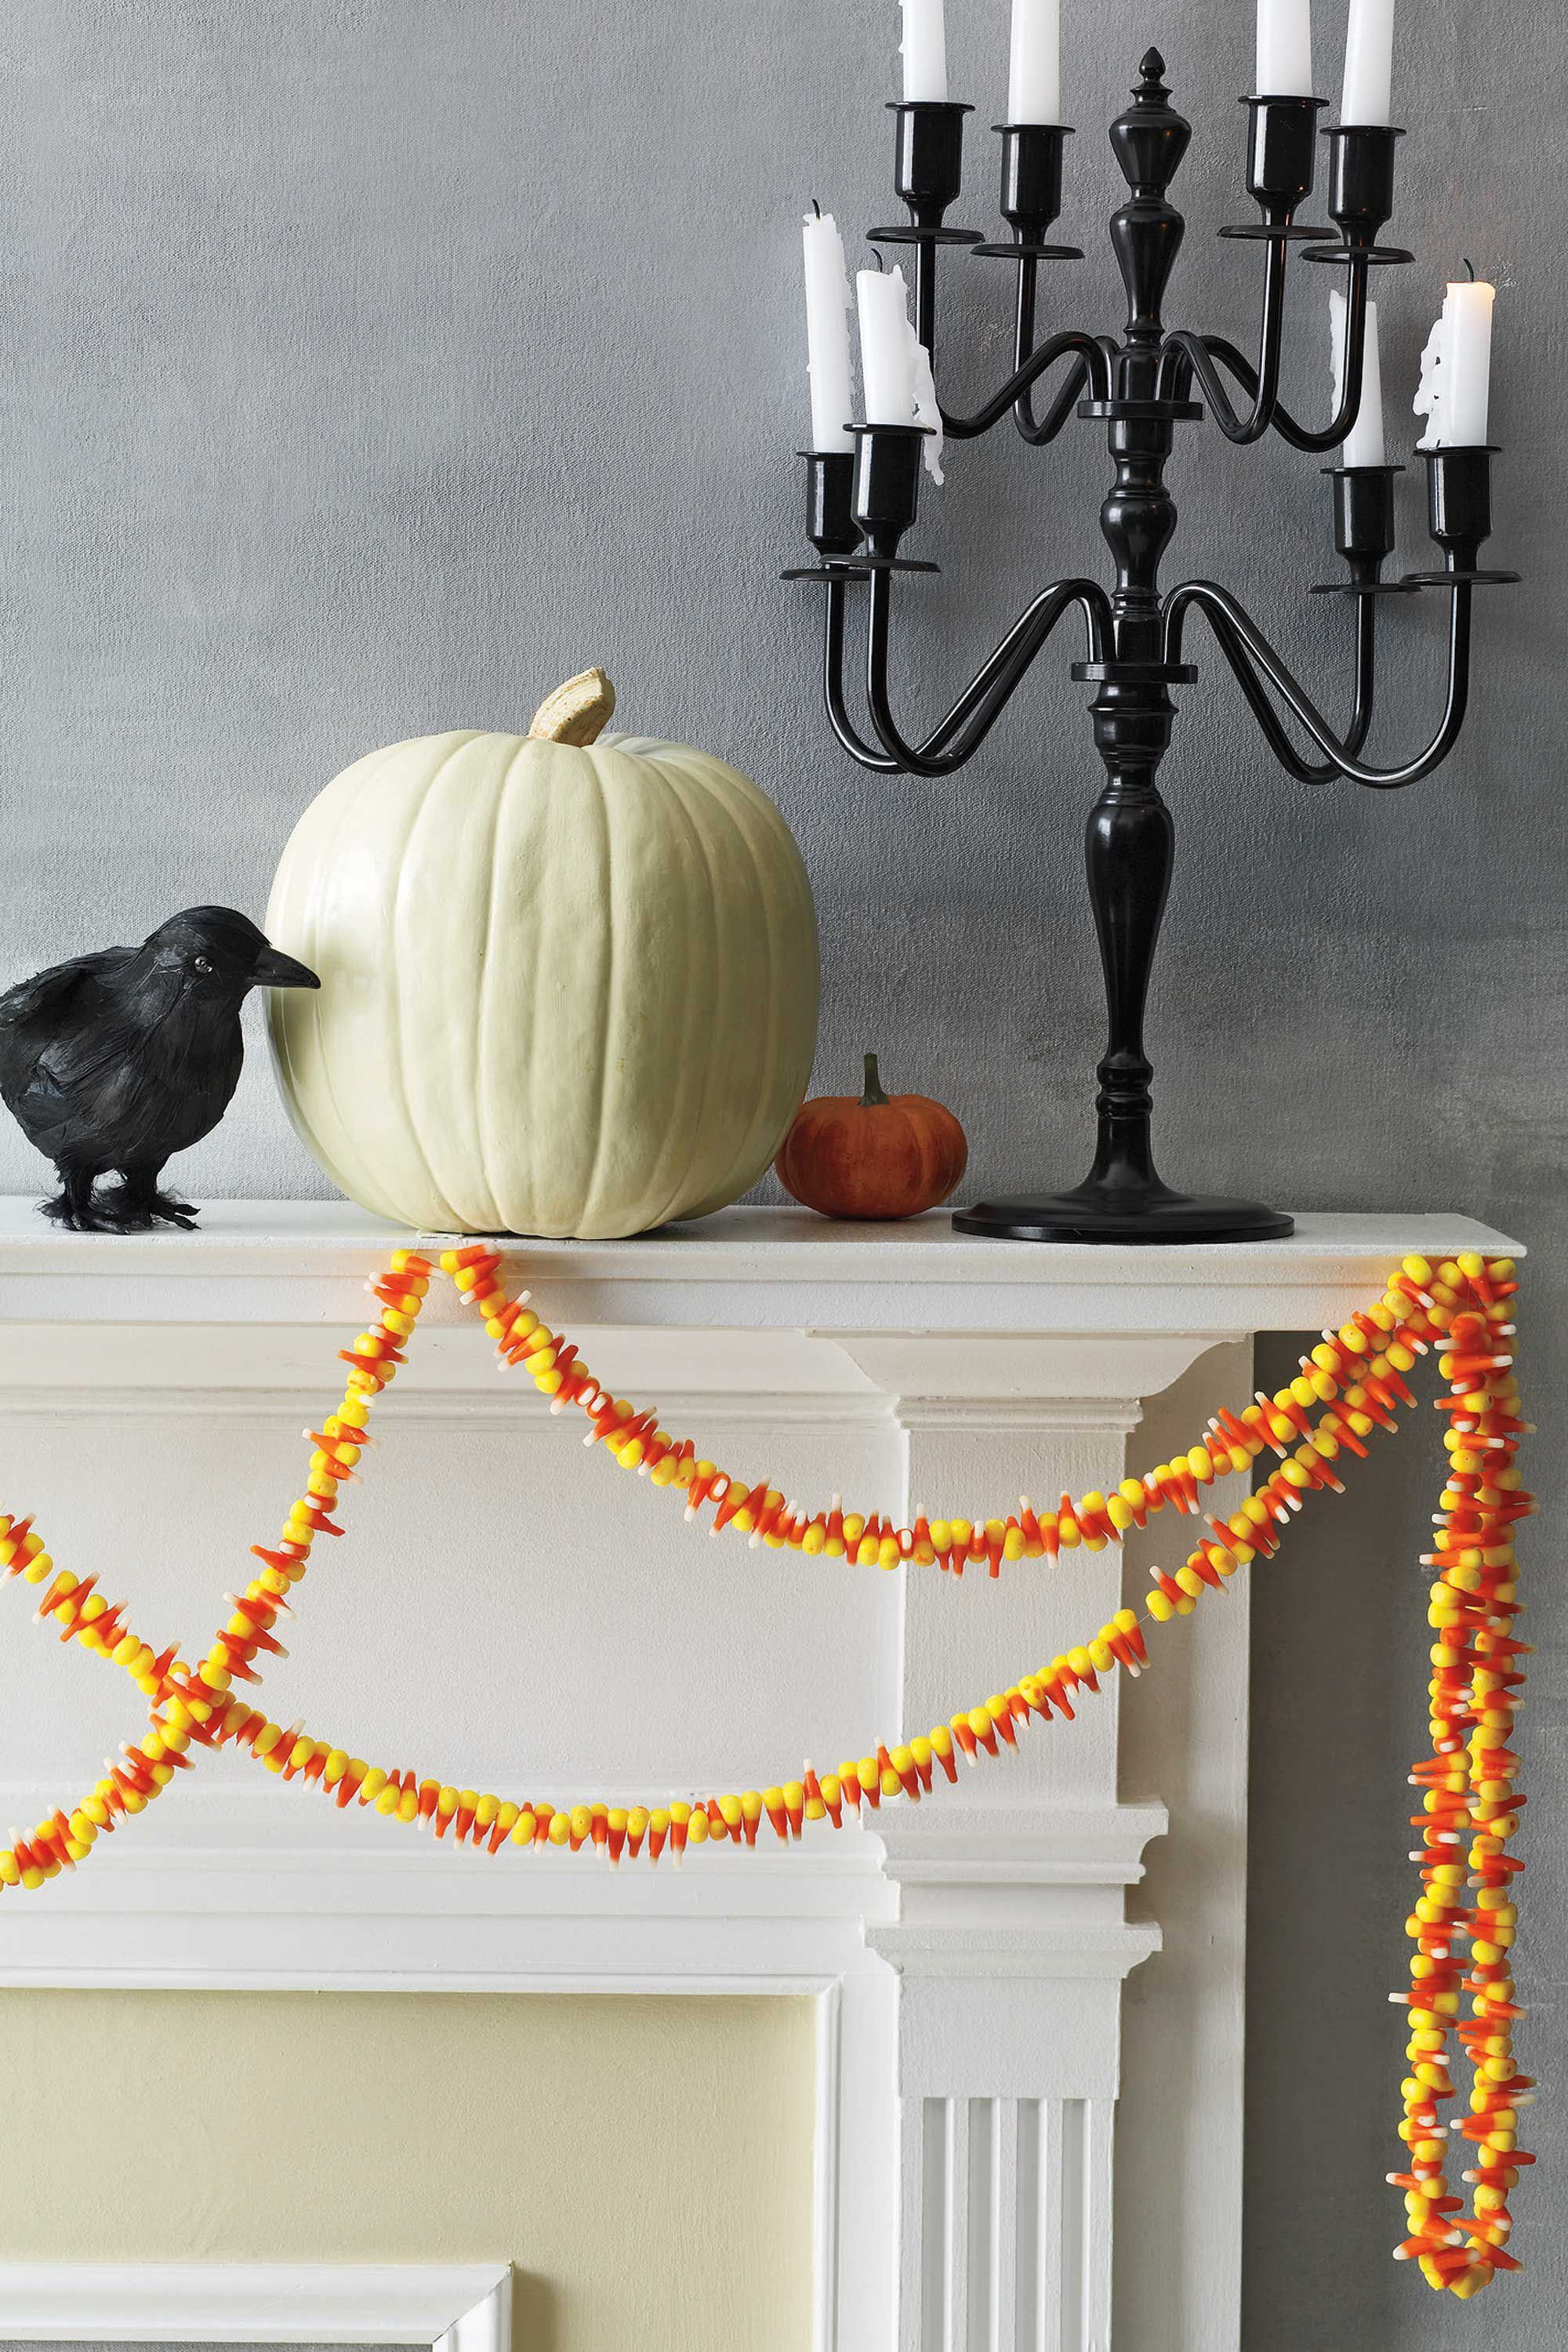 69 Easy DIY Halloween Decorations Homemade Do It Yourself